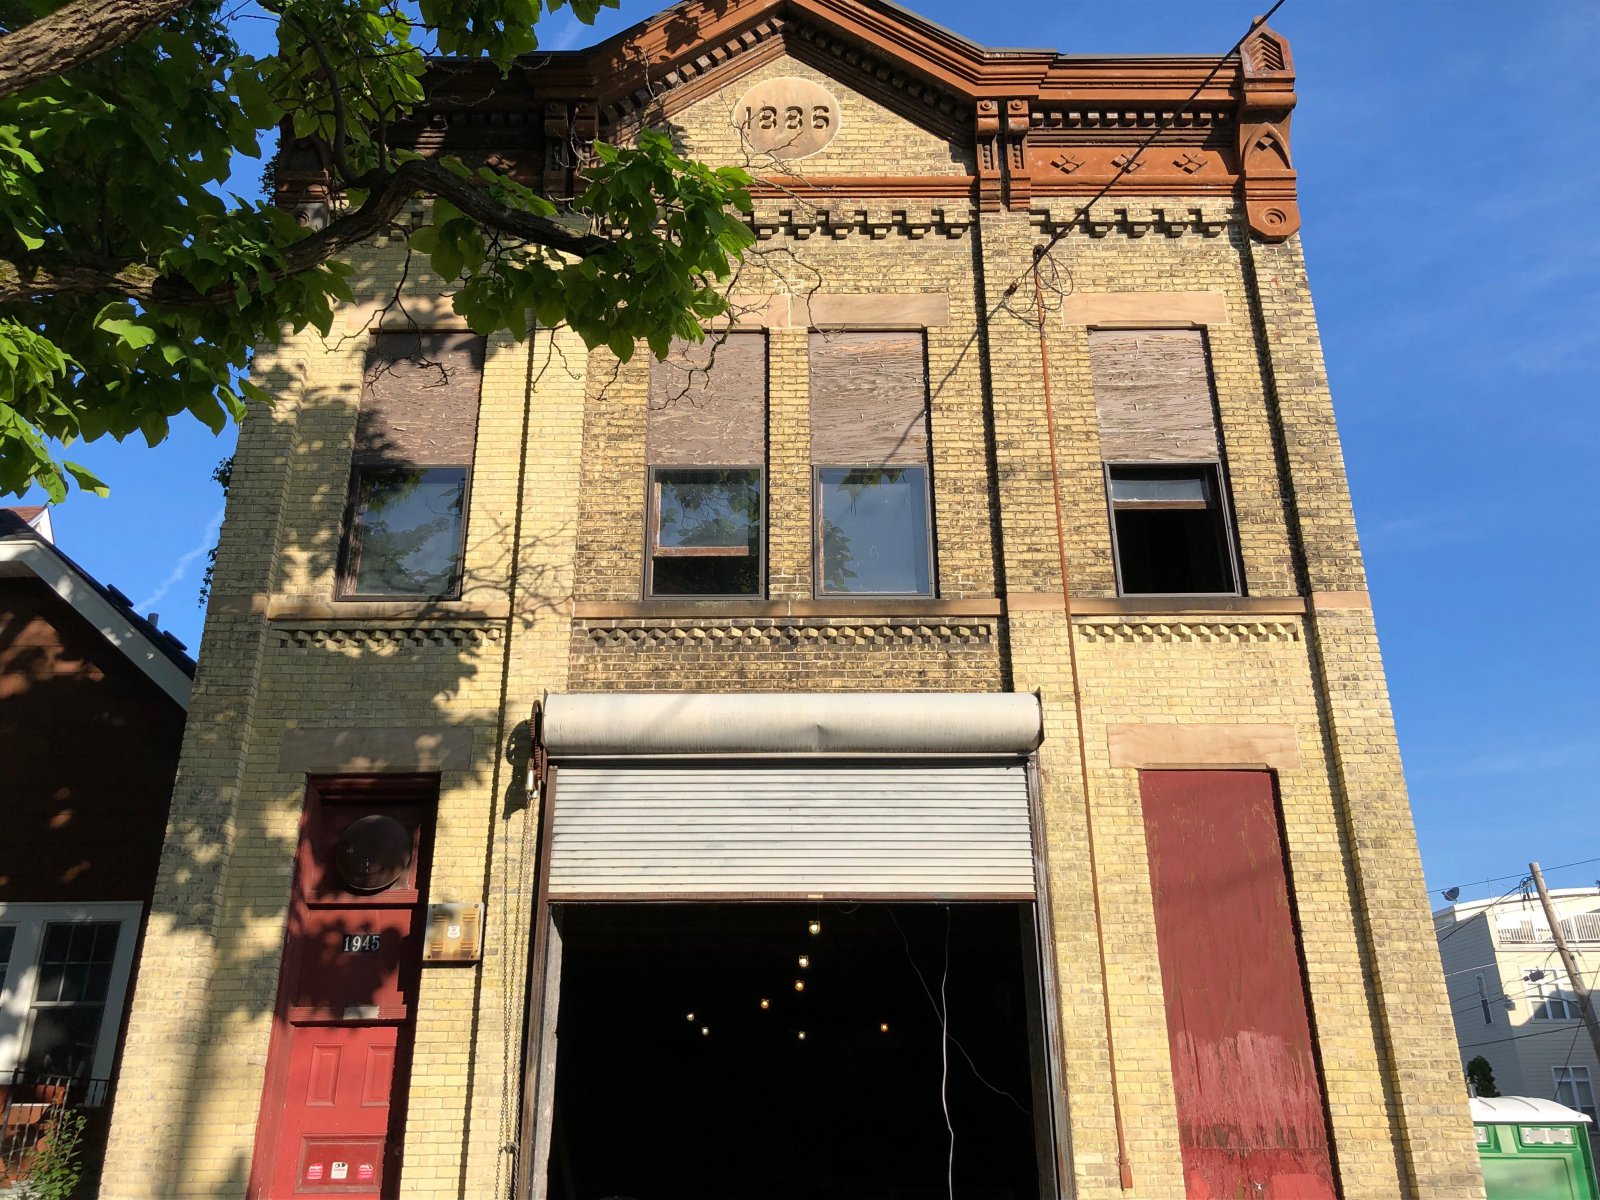 Milwaukee Firehouse Ladder Co. No. 5